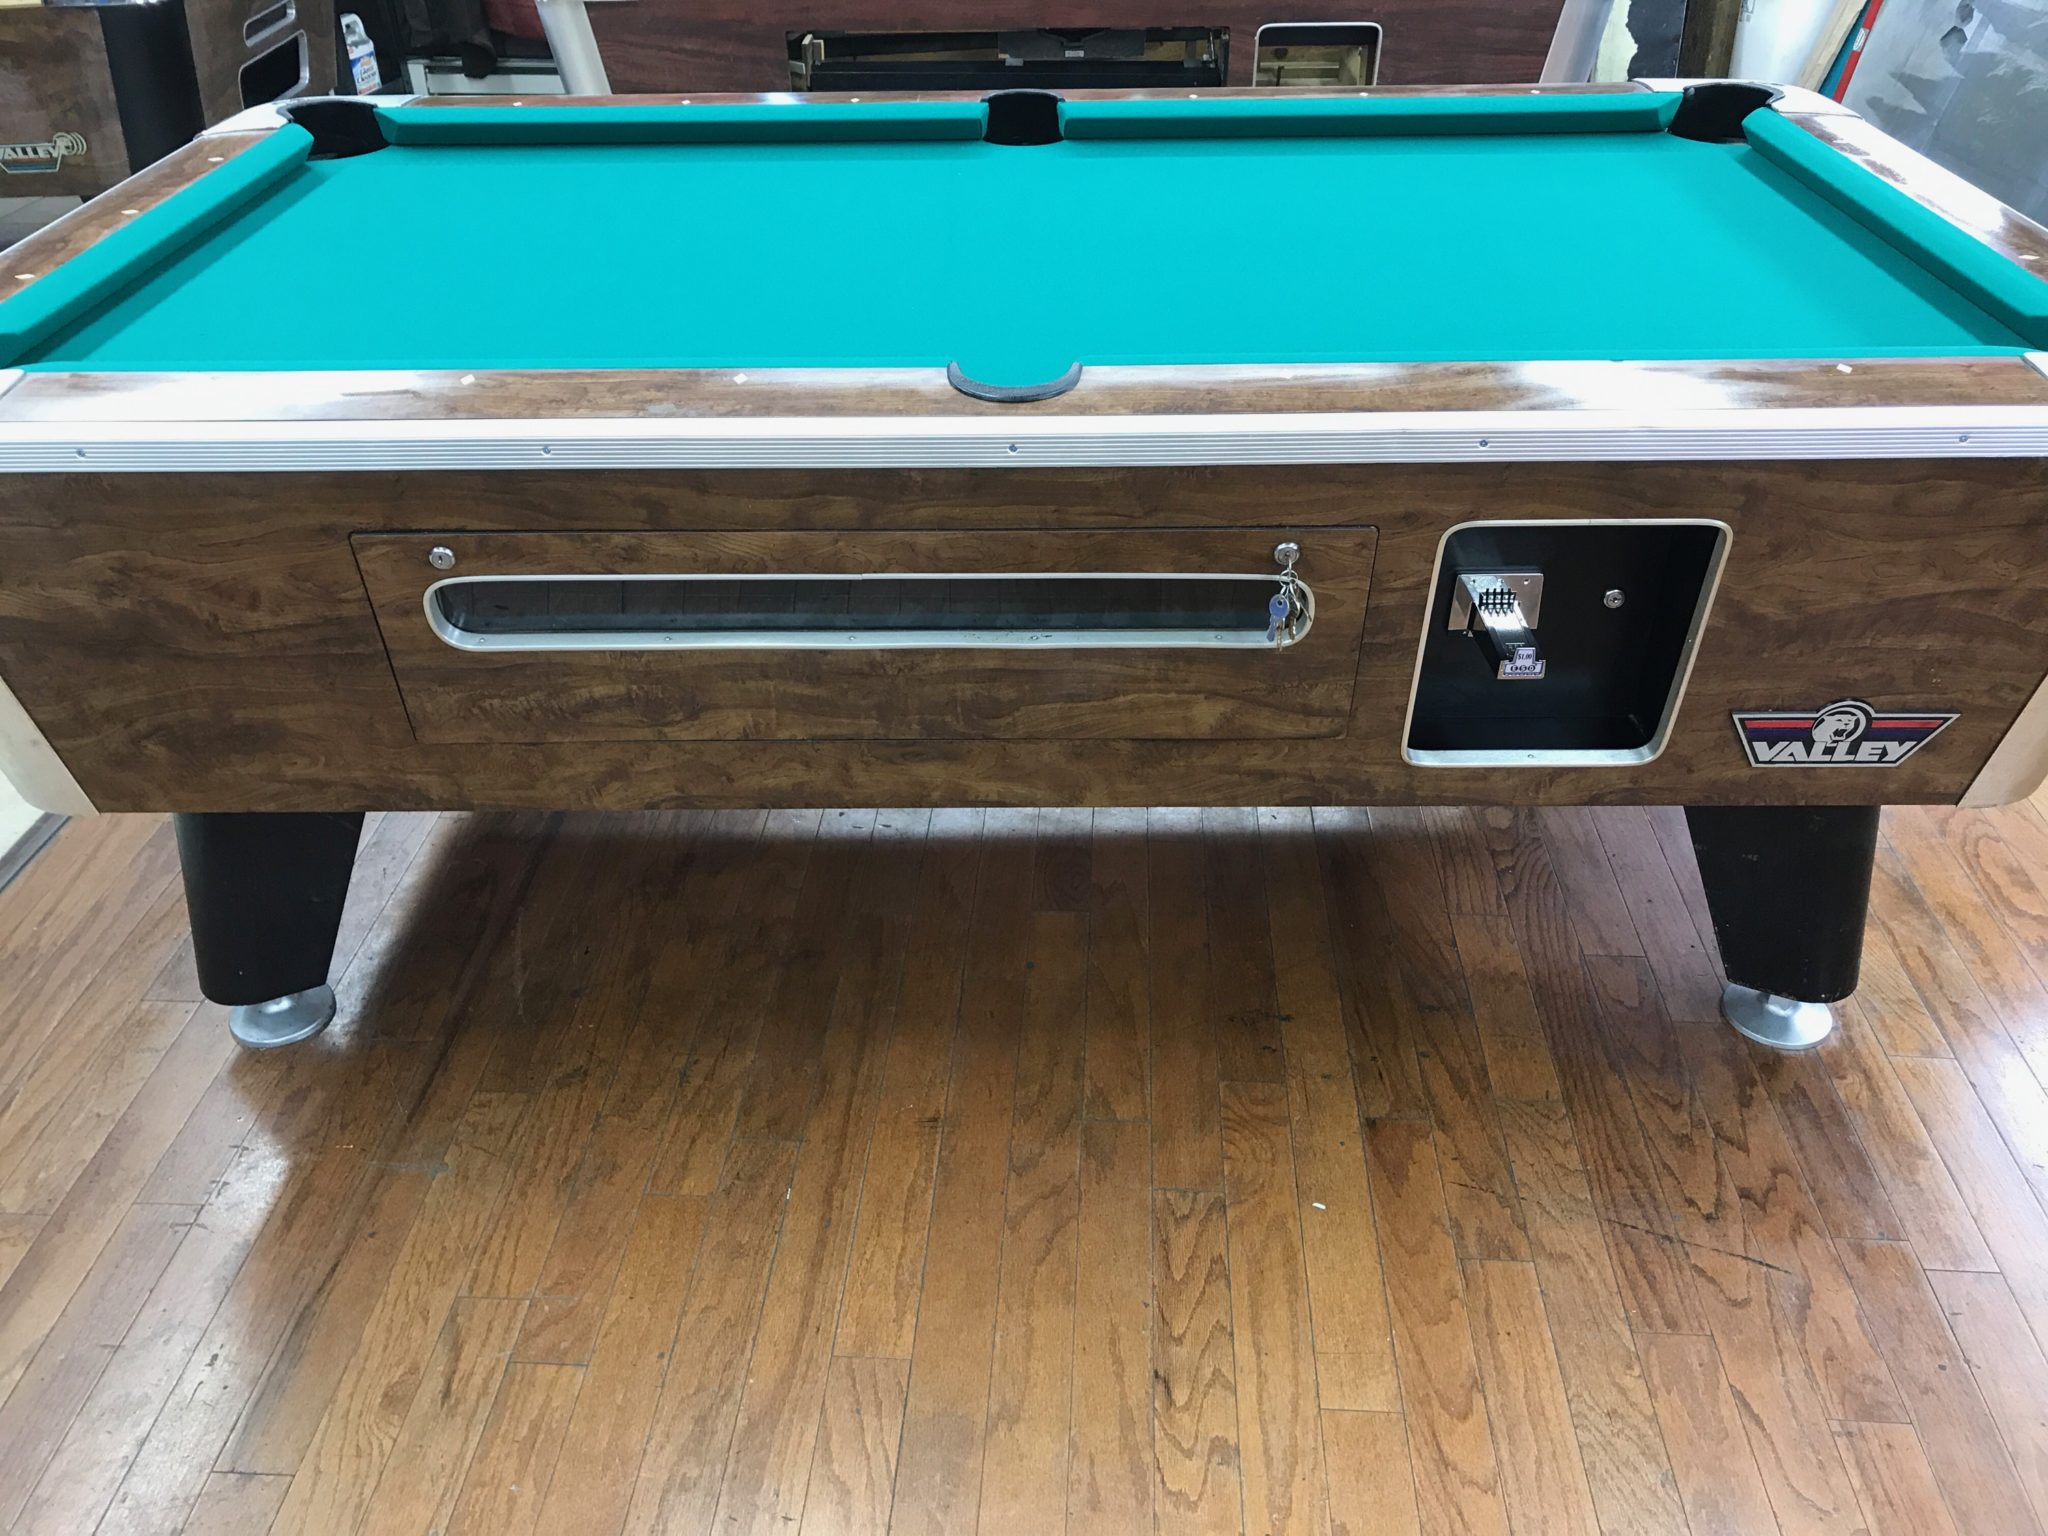 Used Coin Operated Pool Tables Genesis Global Trading - Dynamo coin operated pool table